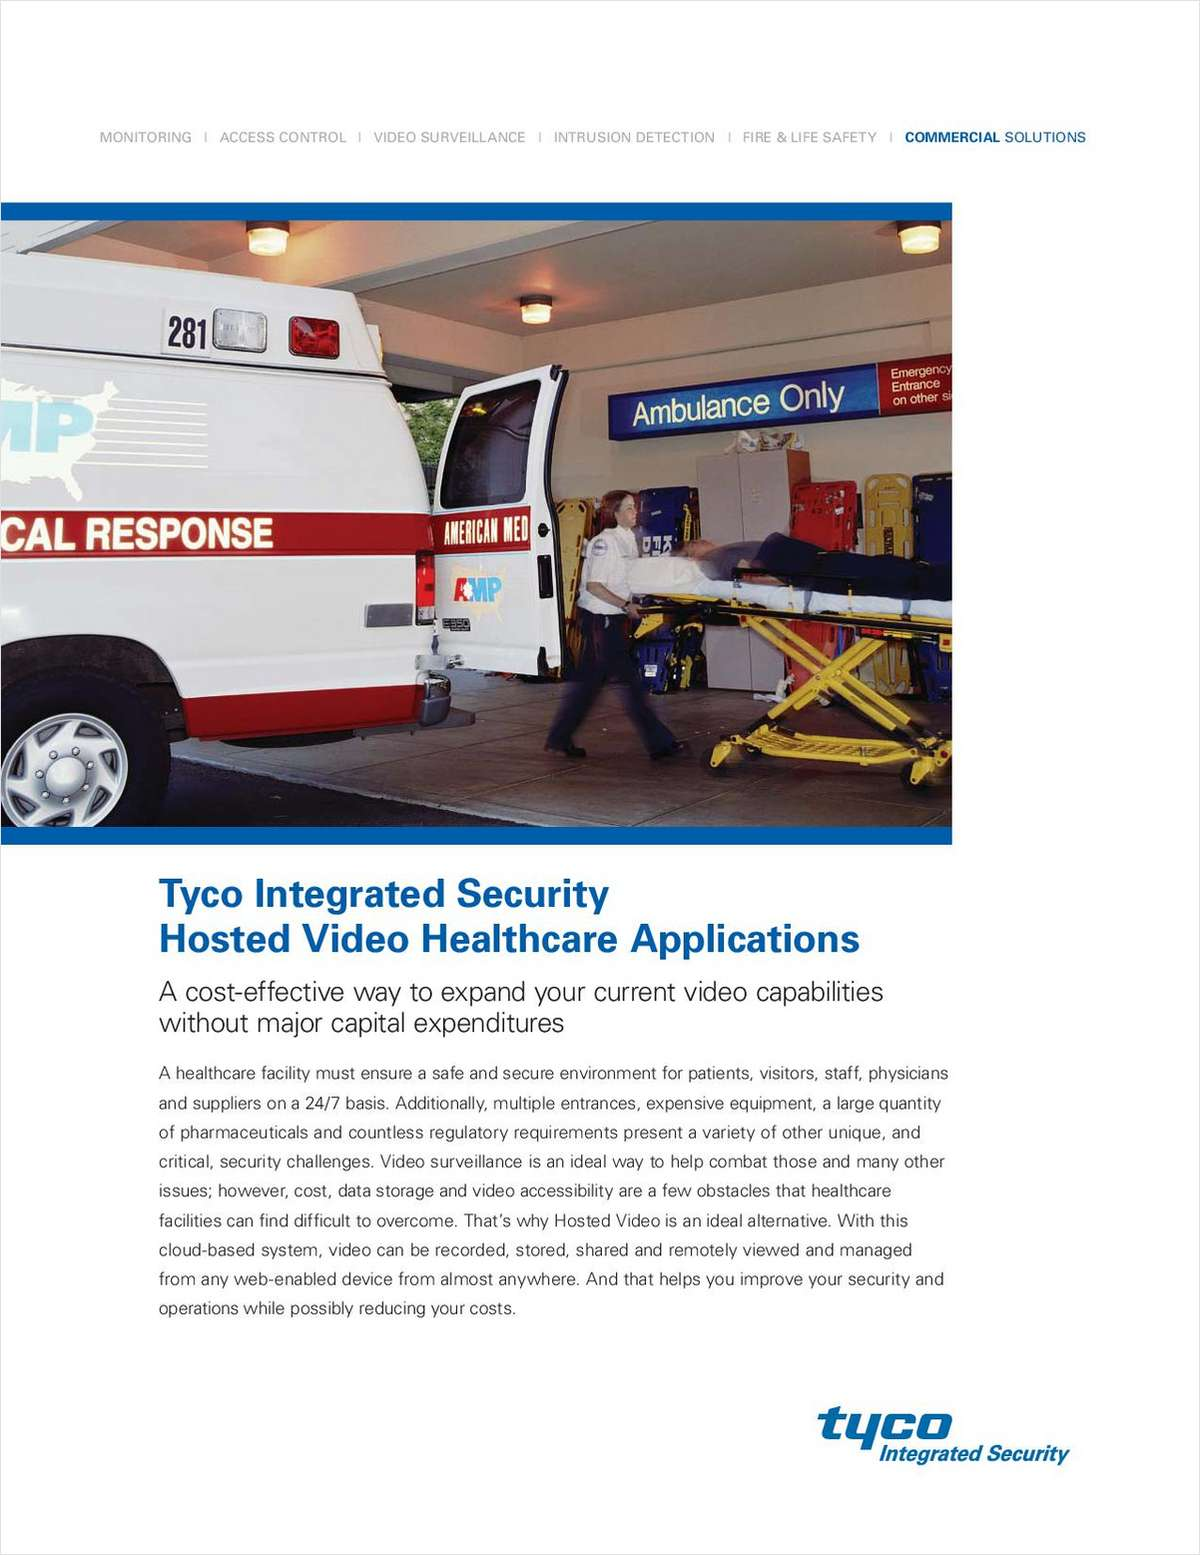 Tyco Integrated Security Hosted Video Healthcare Applications